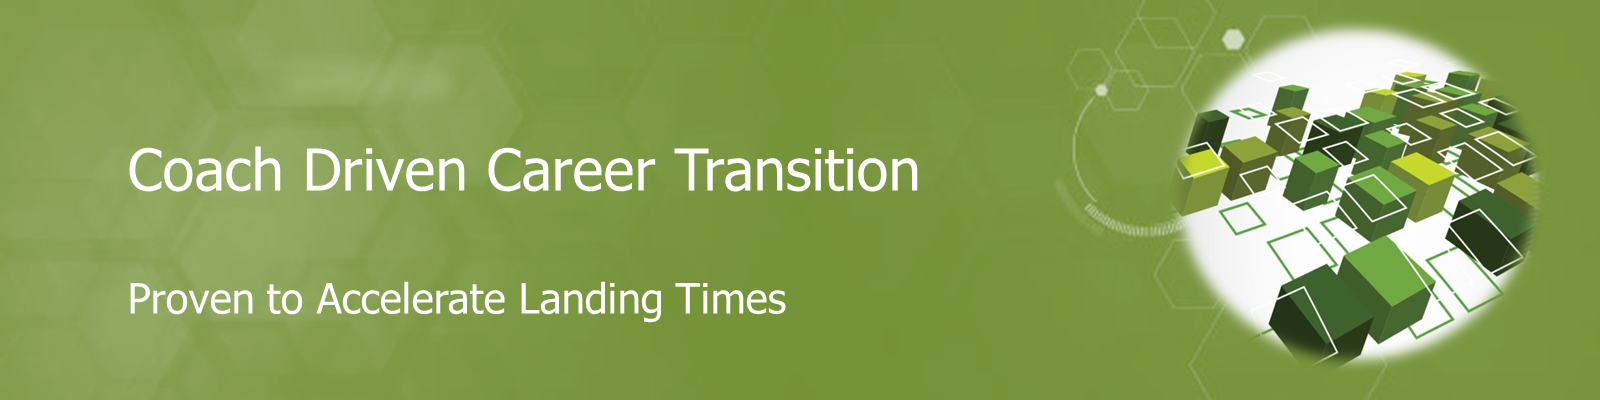 Coach Driven Career Transition- Proven to Accelerate Landing Times